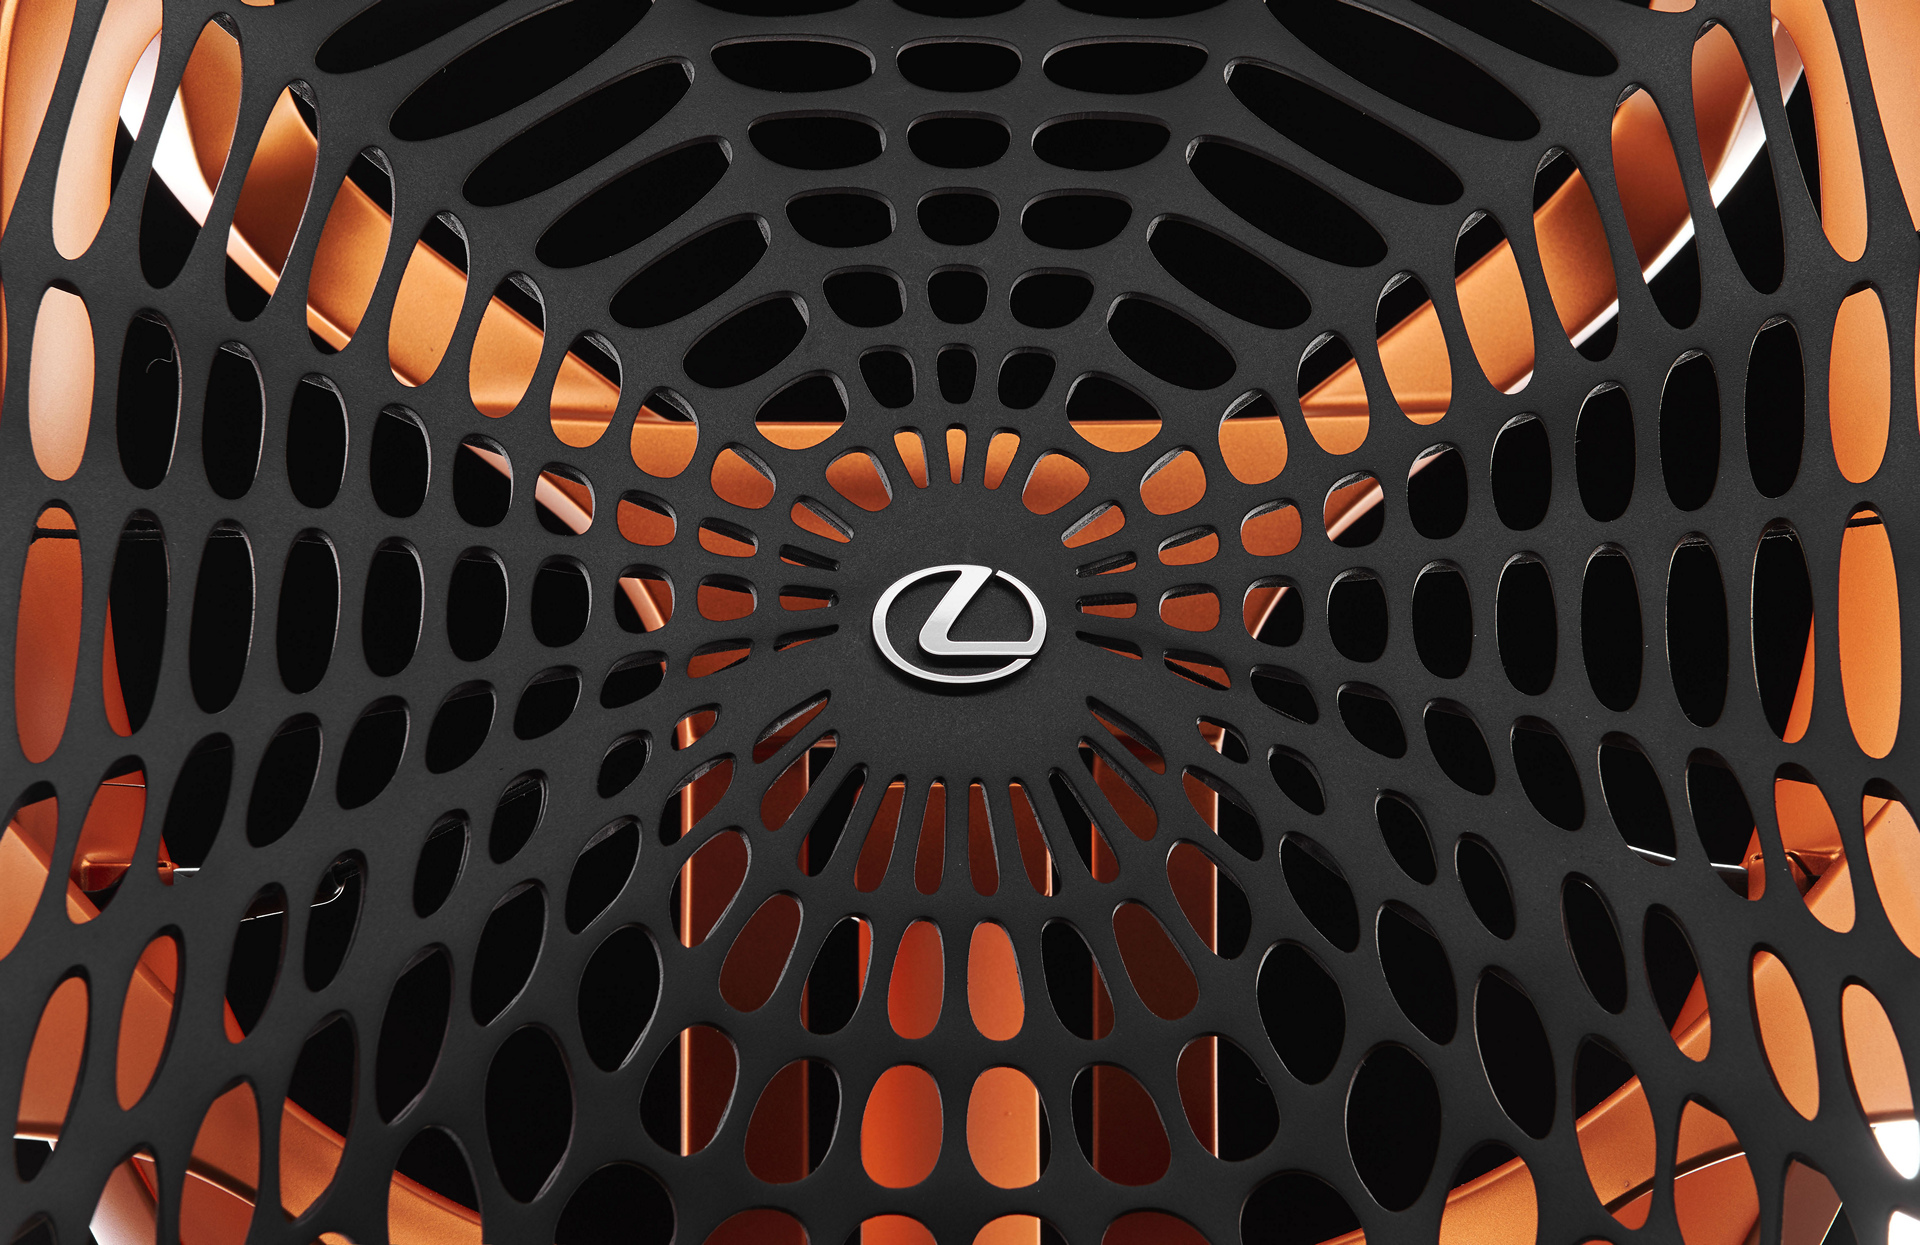 Lexus Kinetic Seat Concept © Toyota Motor Corporation